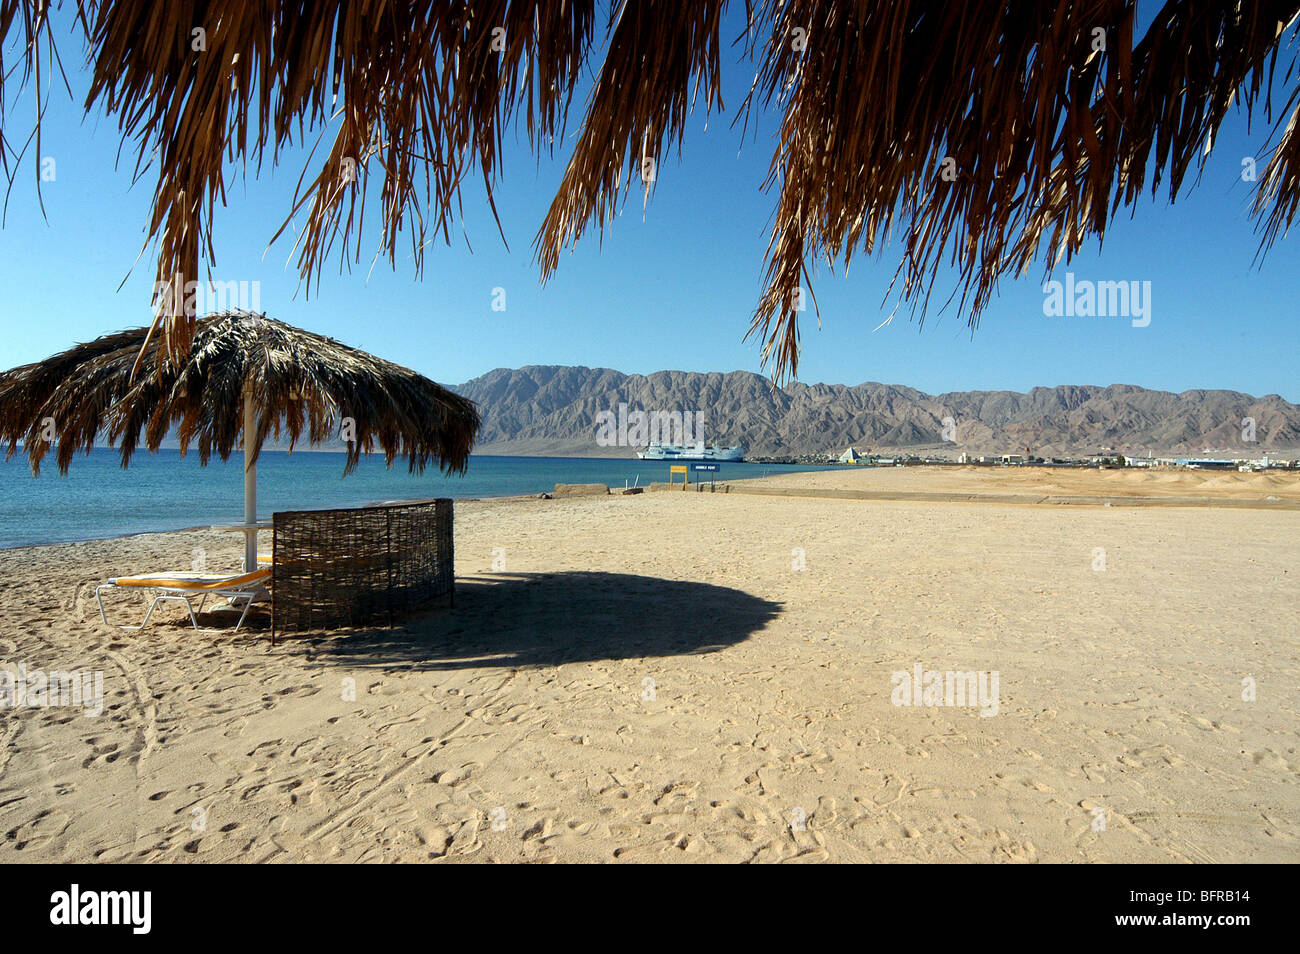 The beach at the Coral Hilton Hotel, Nuweiba, Egypt. - Stock Image